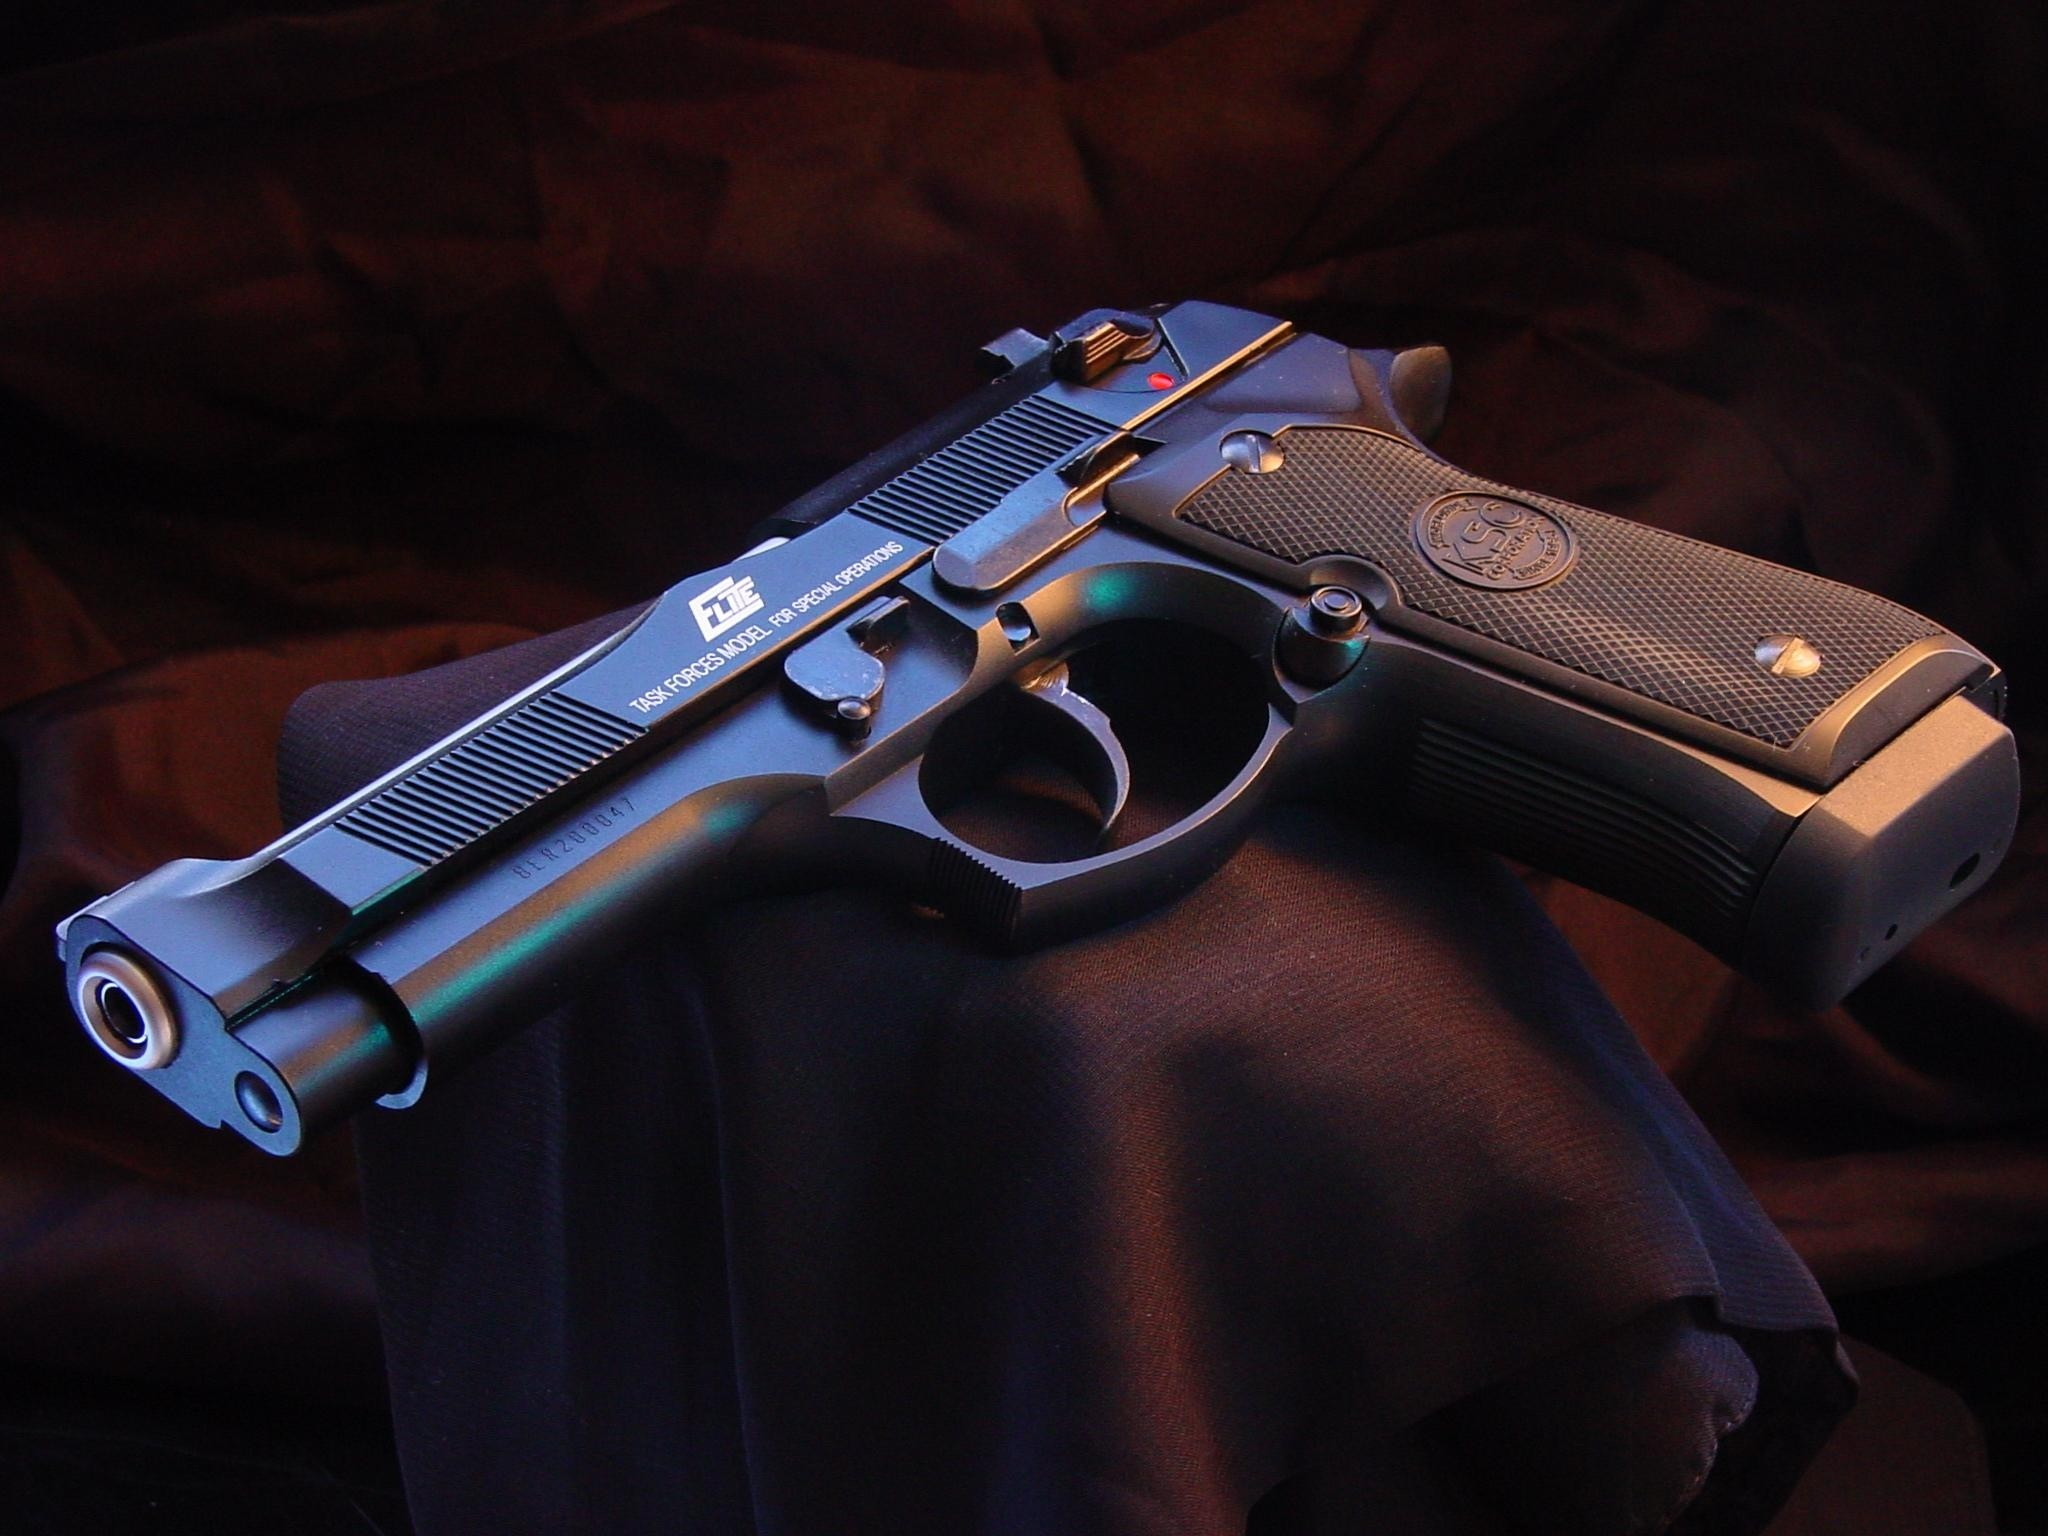 Guns And Bullets Hd Wallpaper And Pictures - Beretta Elite (#127937) - HD  Wallpaper & Backgrounds Download